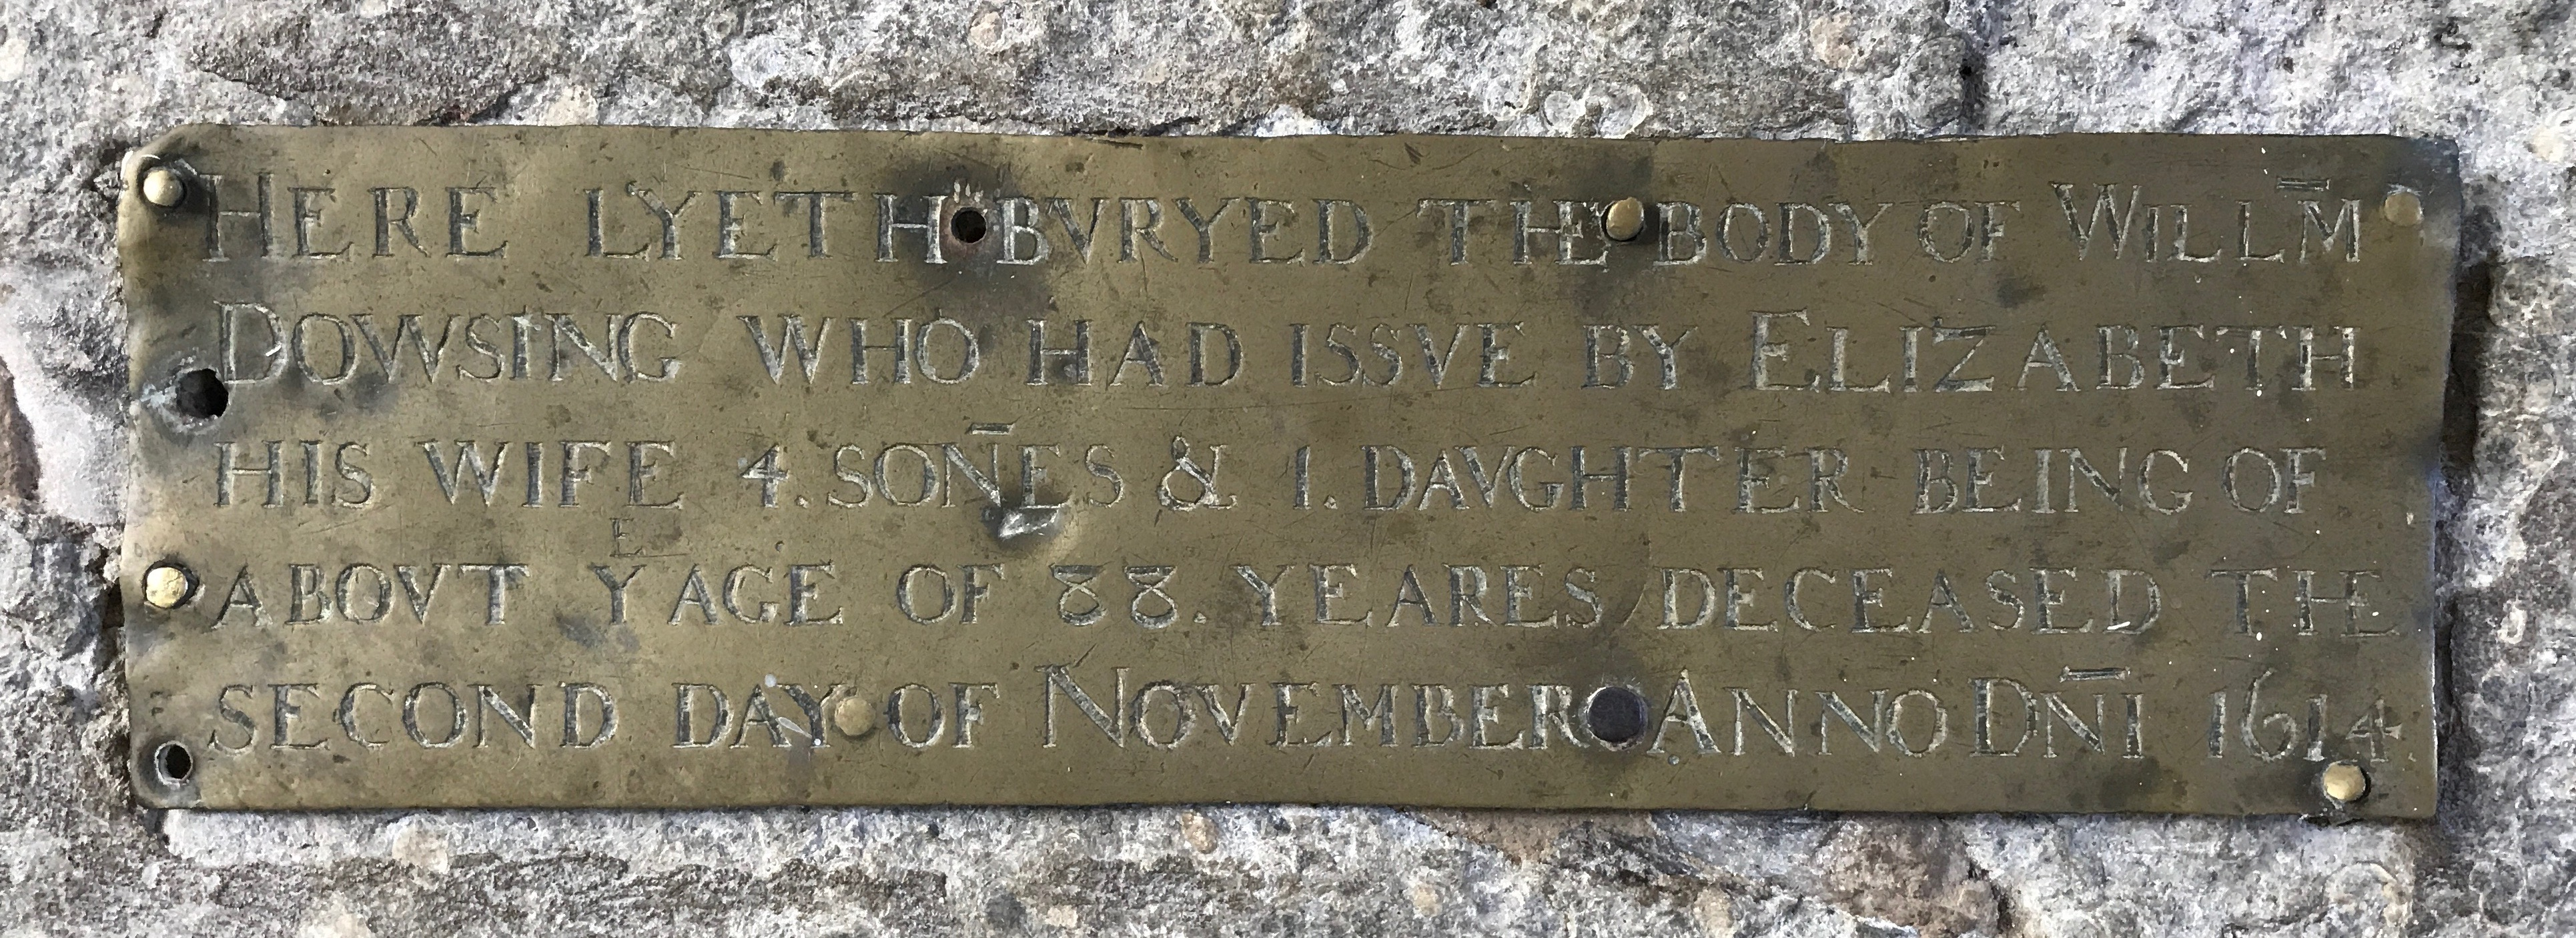 Brass plate affixed to William Dowsing tomb, 1526-1614, Laxfield church.